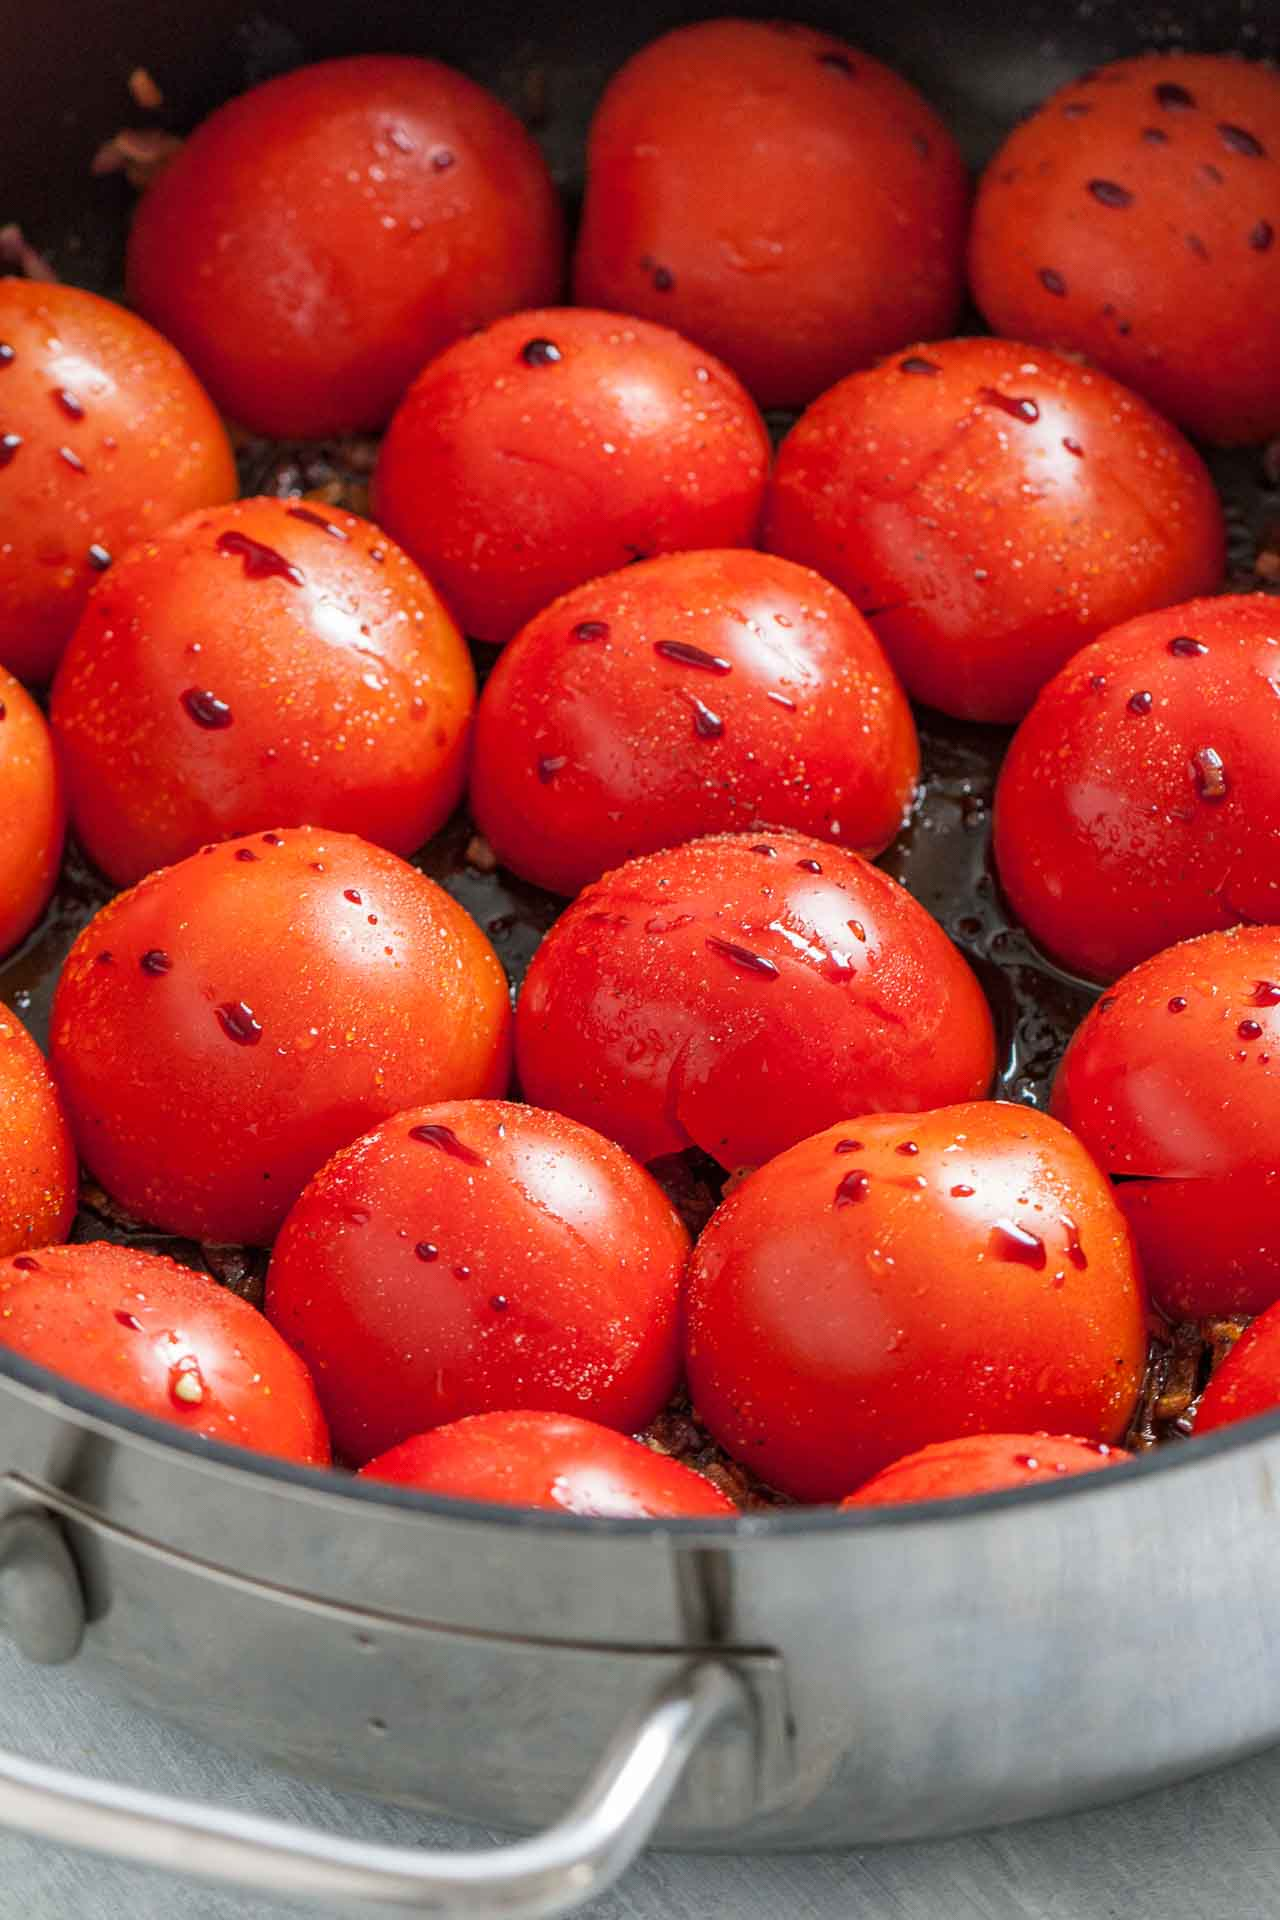 Tomatoes before they go into the oven